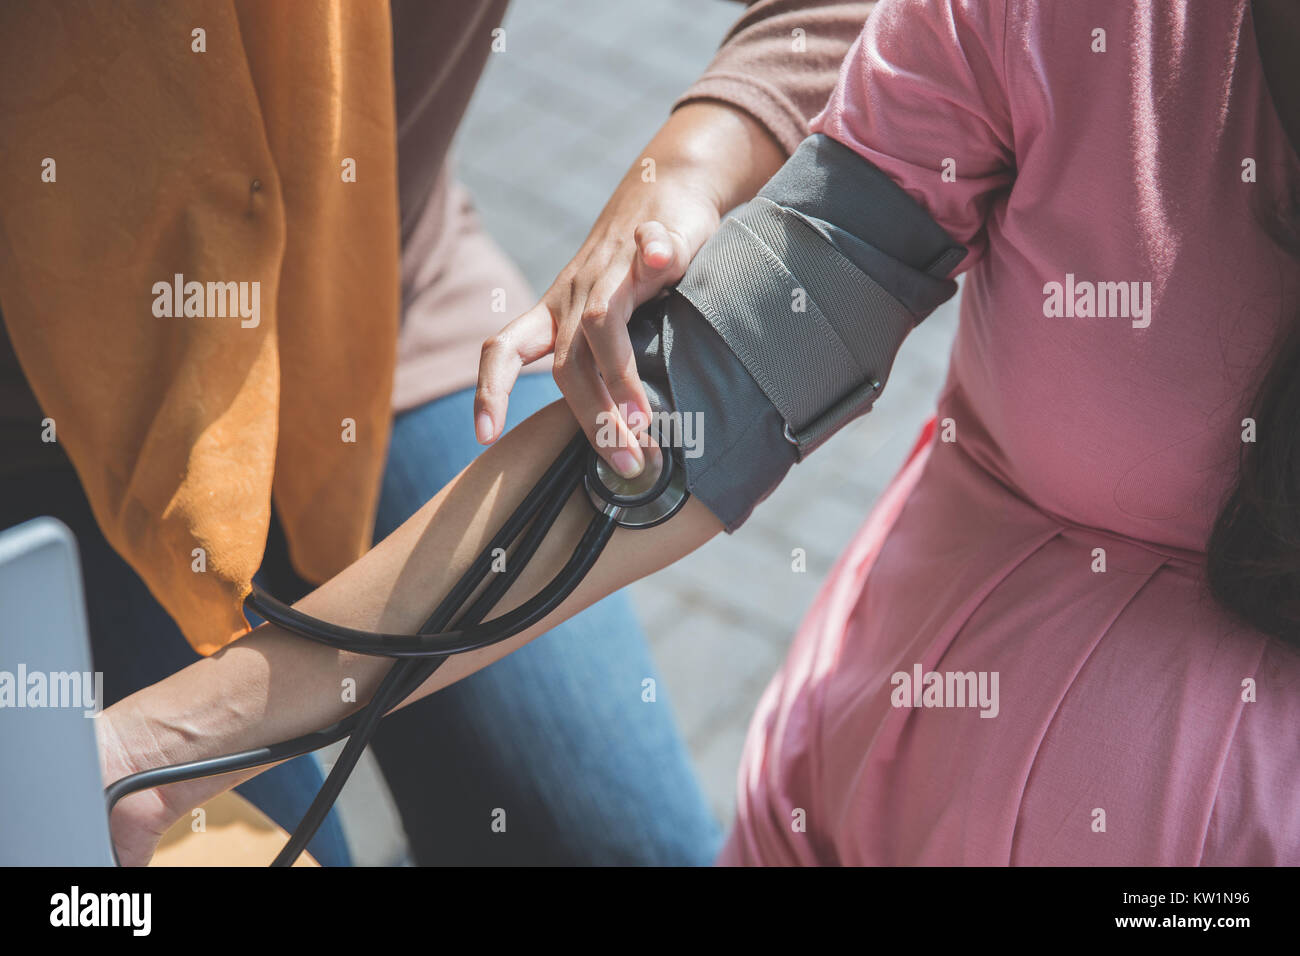 Blood pressure measuring, close up - Stock Image